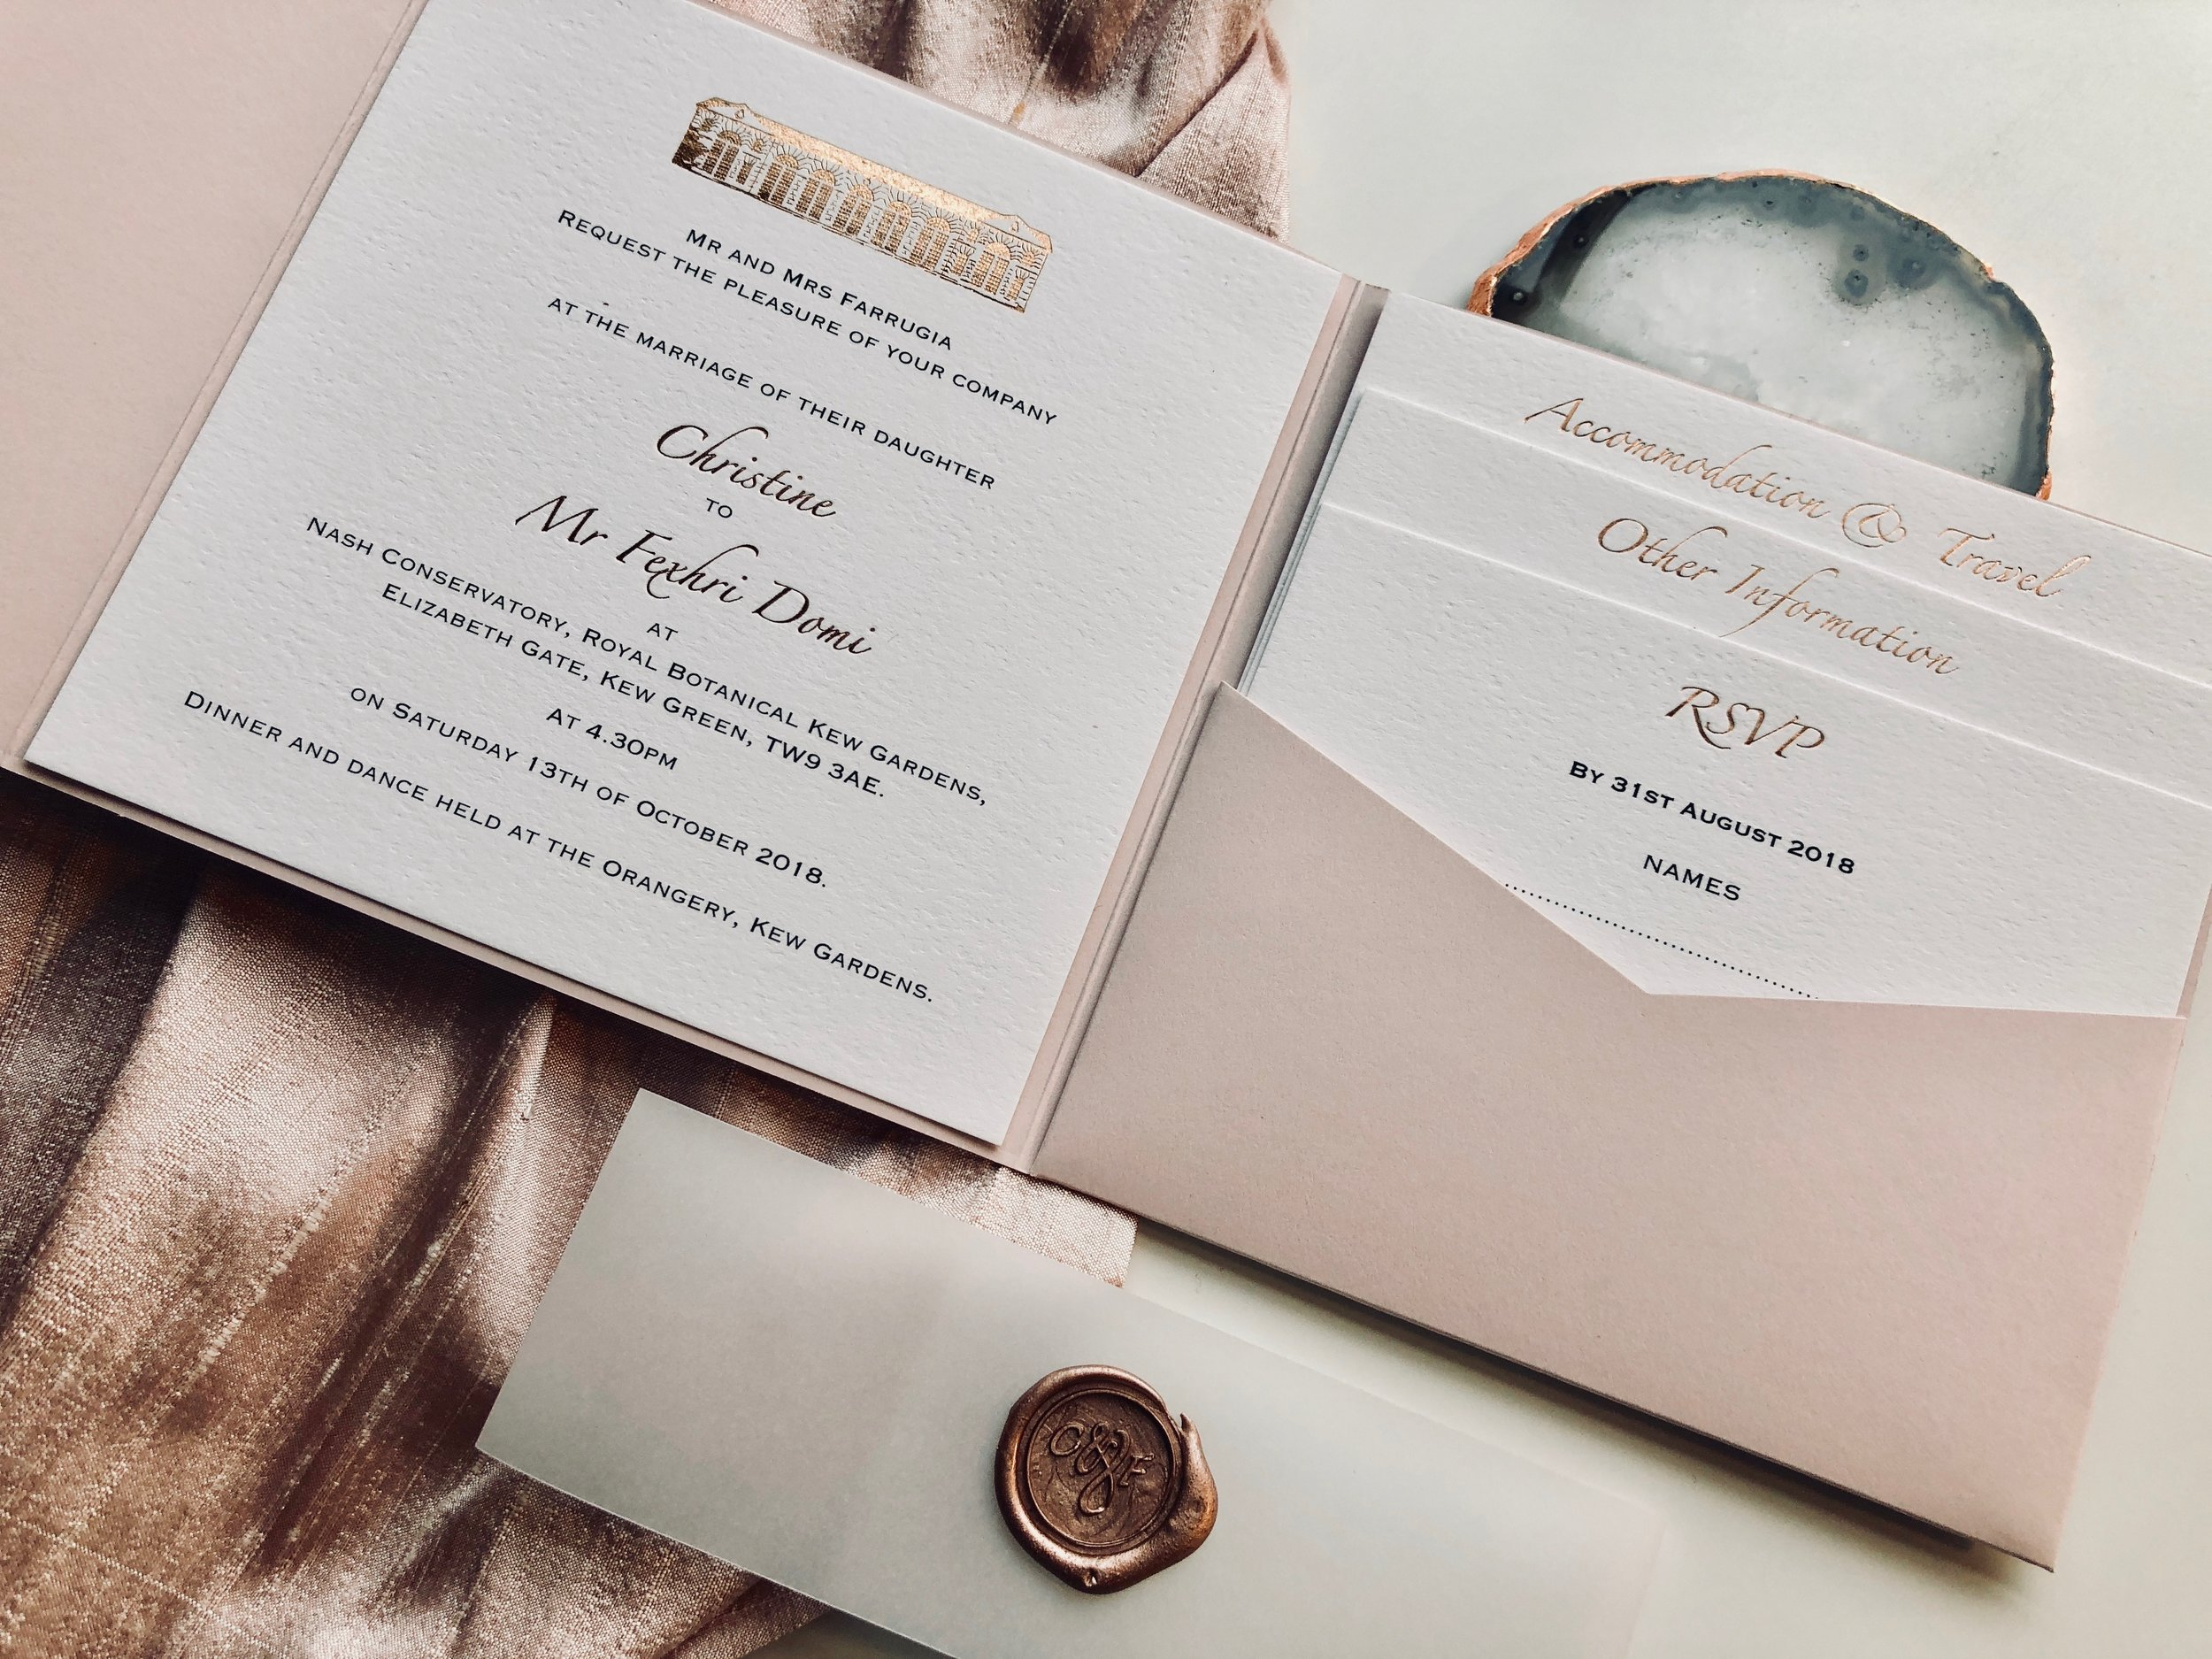 Kew Gardens Bespoke Wedding Invitation